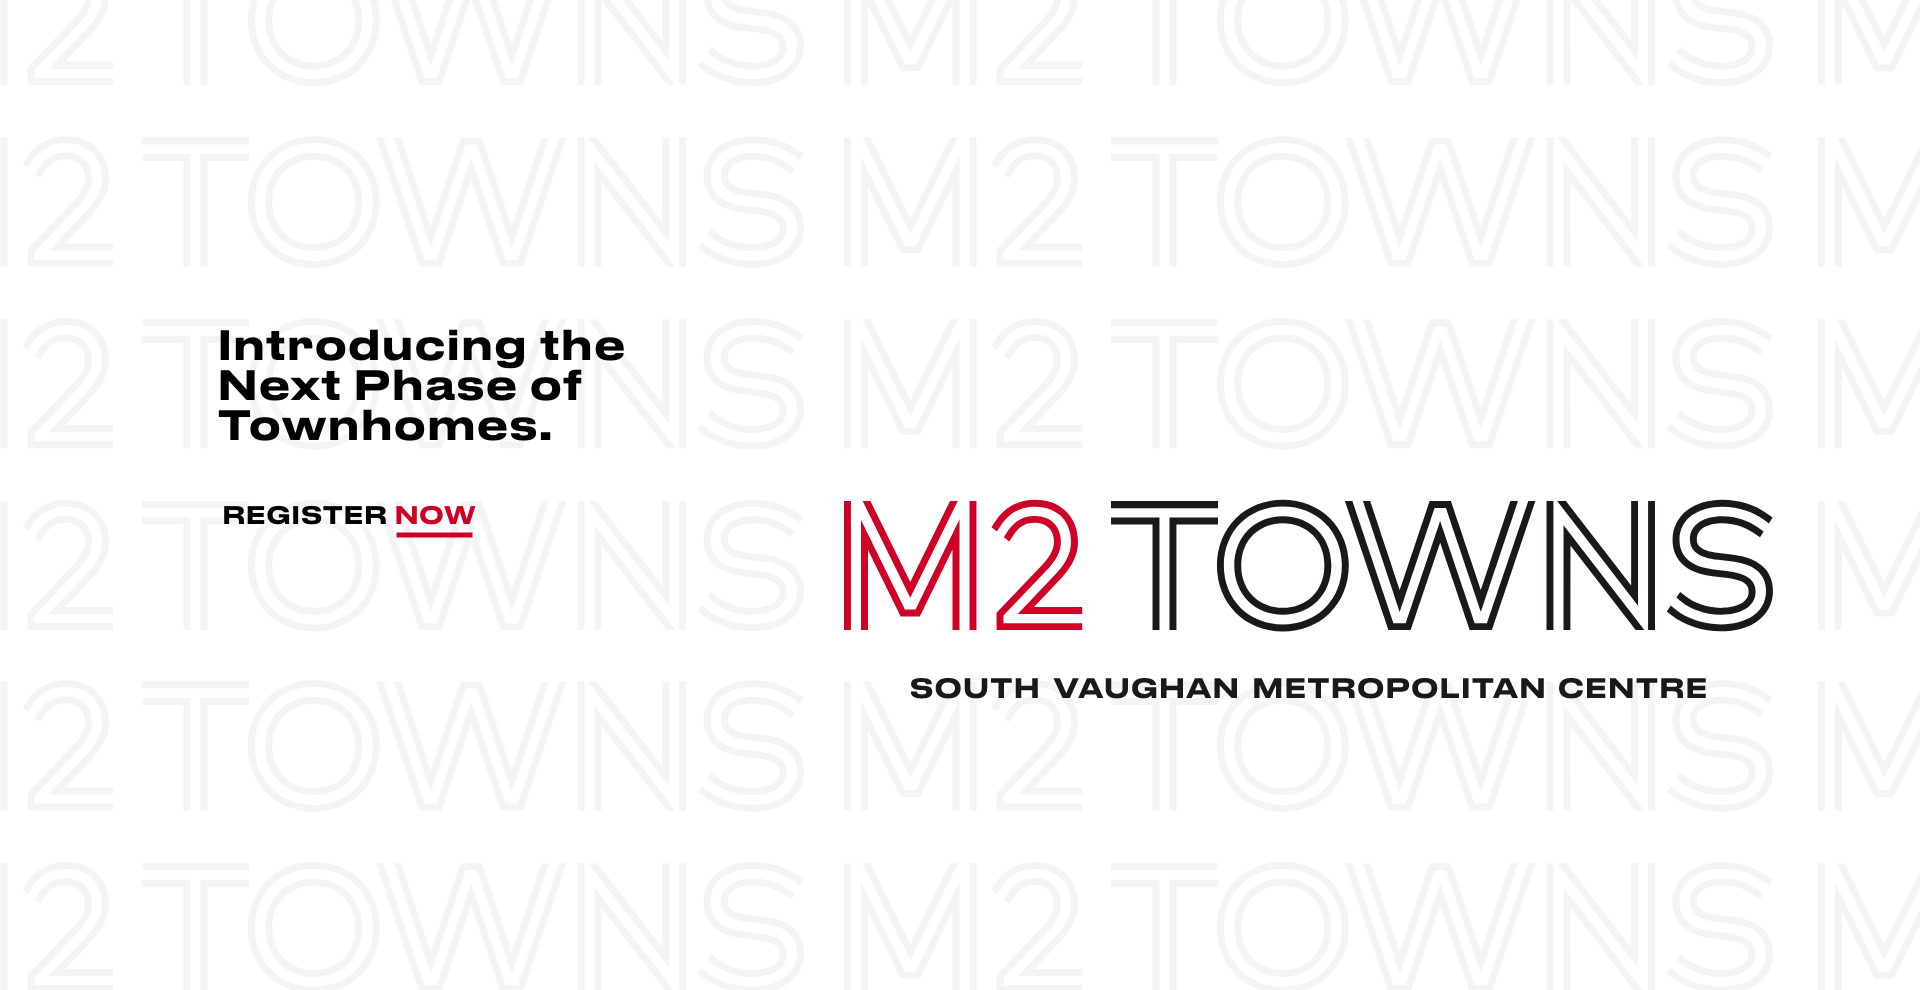 M2 Towns